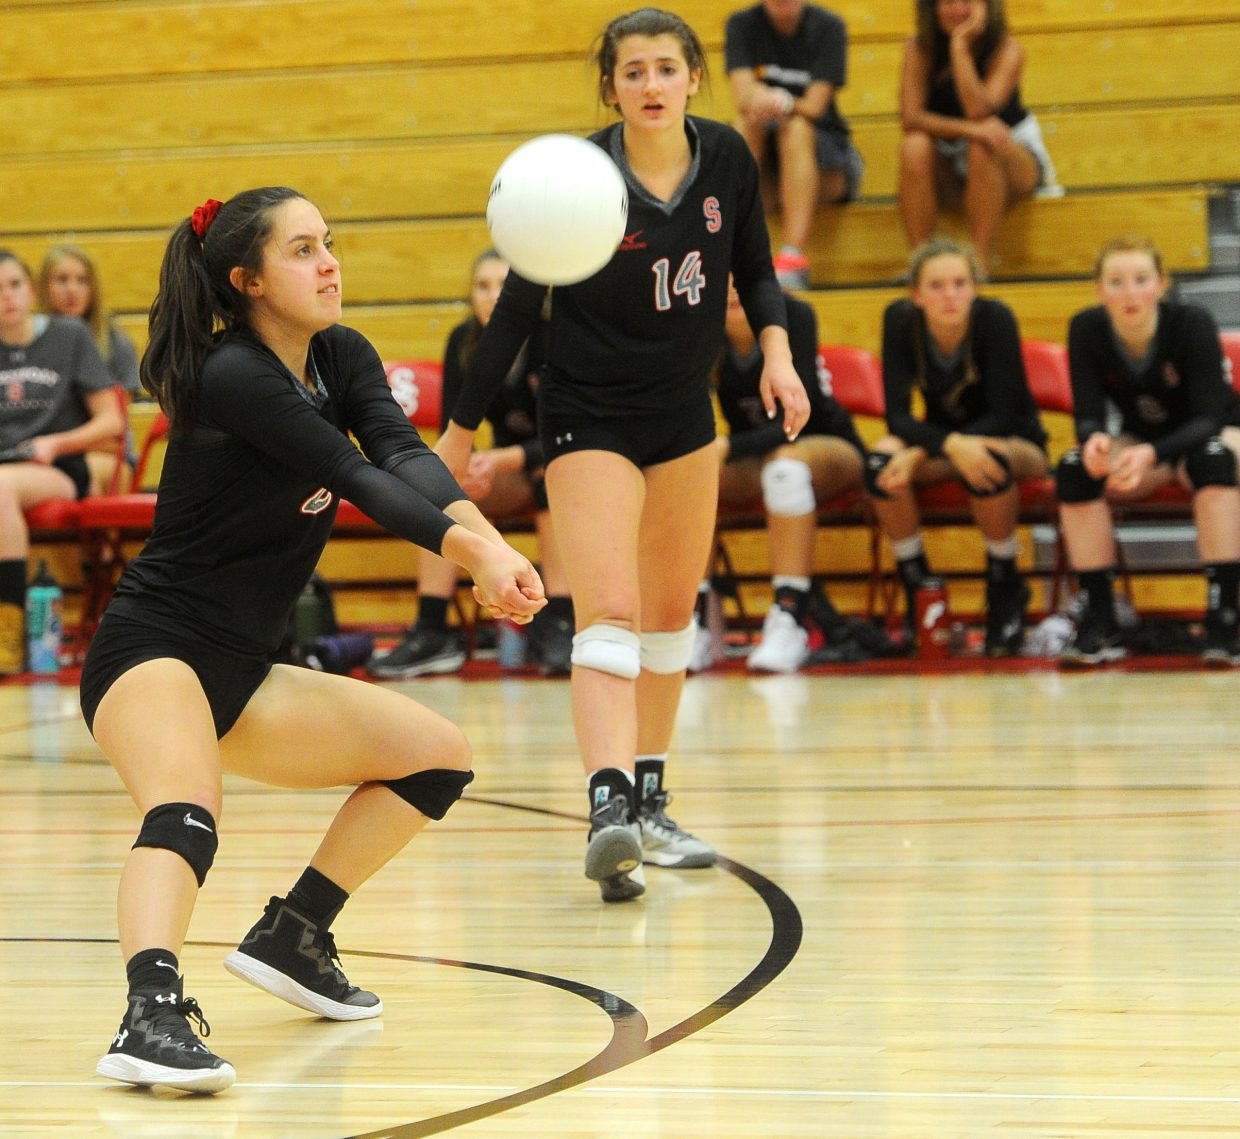 Steamboat Springs junior Lauren Ehlrich digs a hit in the match against Eagle Valley at Steamboat Springs High School on Sept. 13.